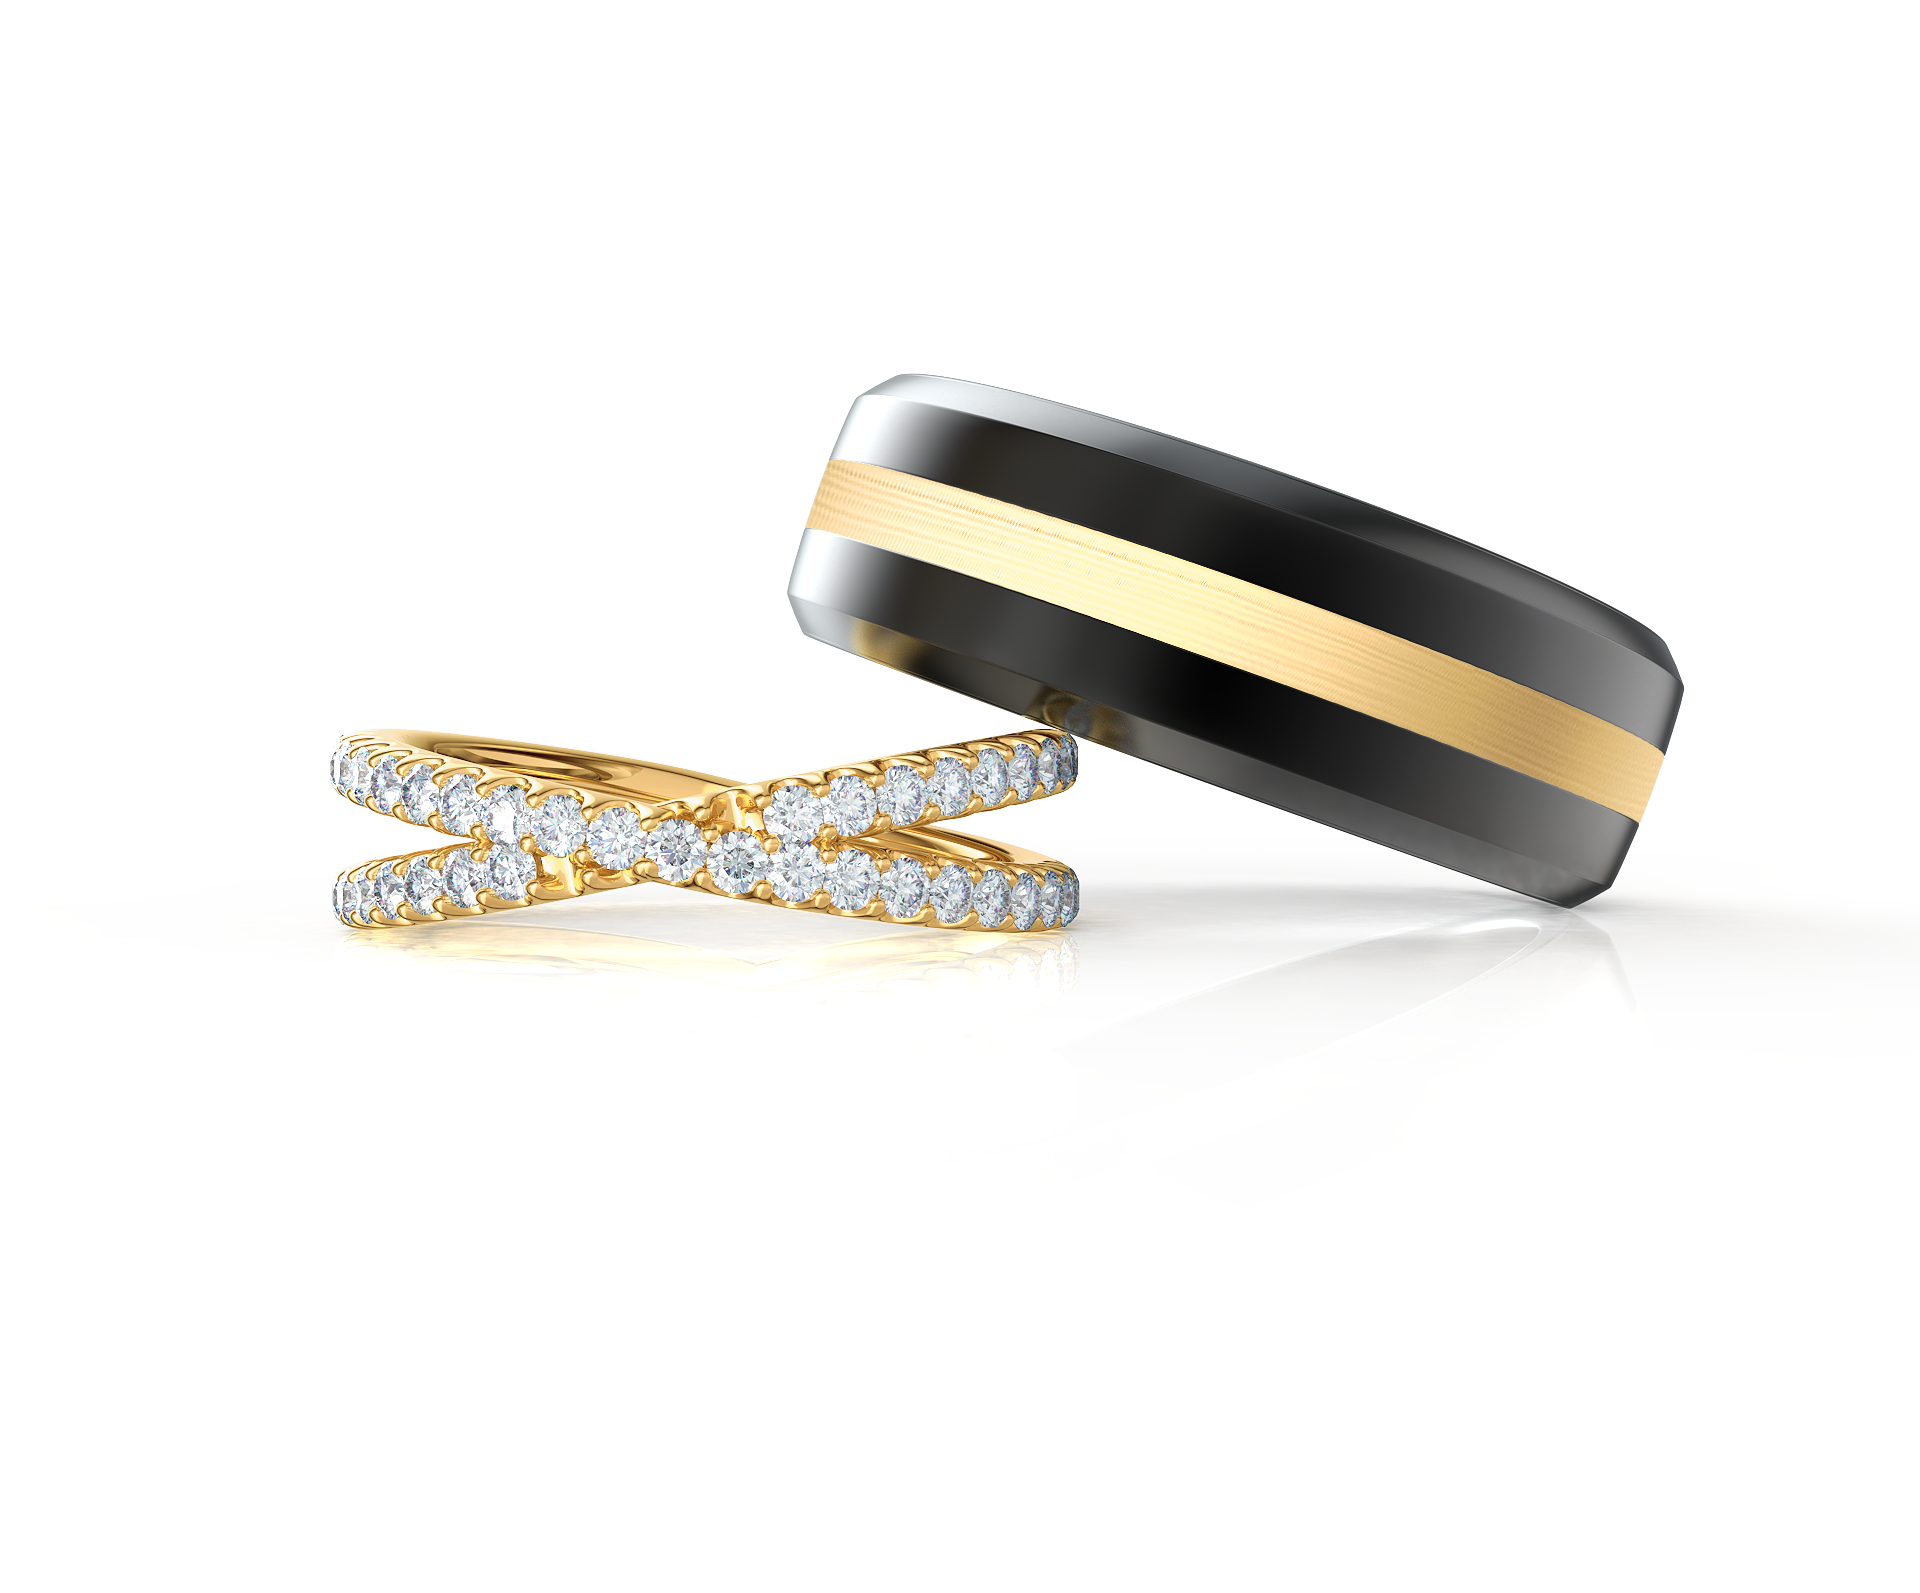 Pair your X Wedding Band with a Precious Metal Inlay Ring    Shop Now